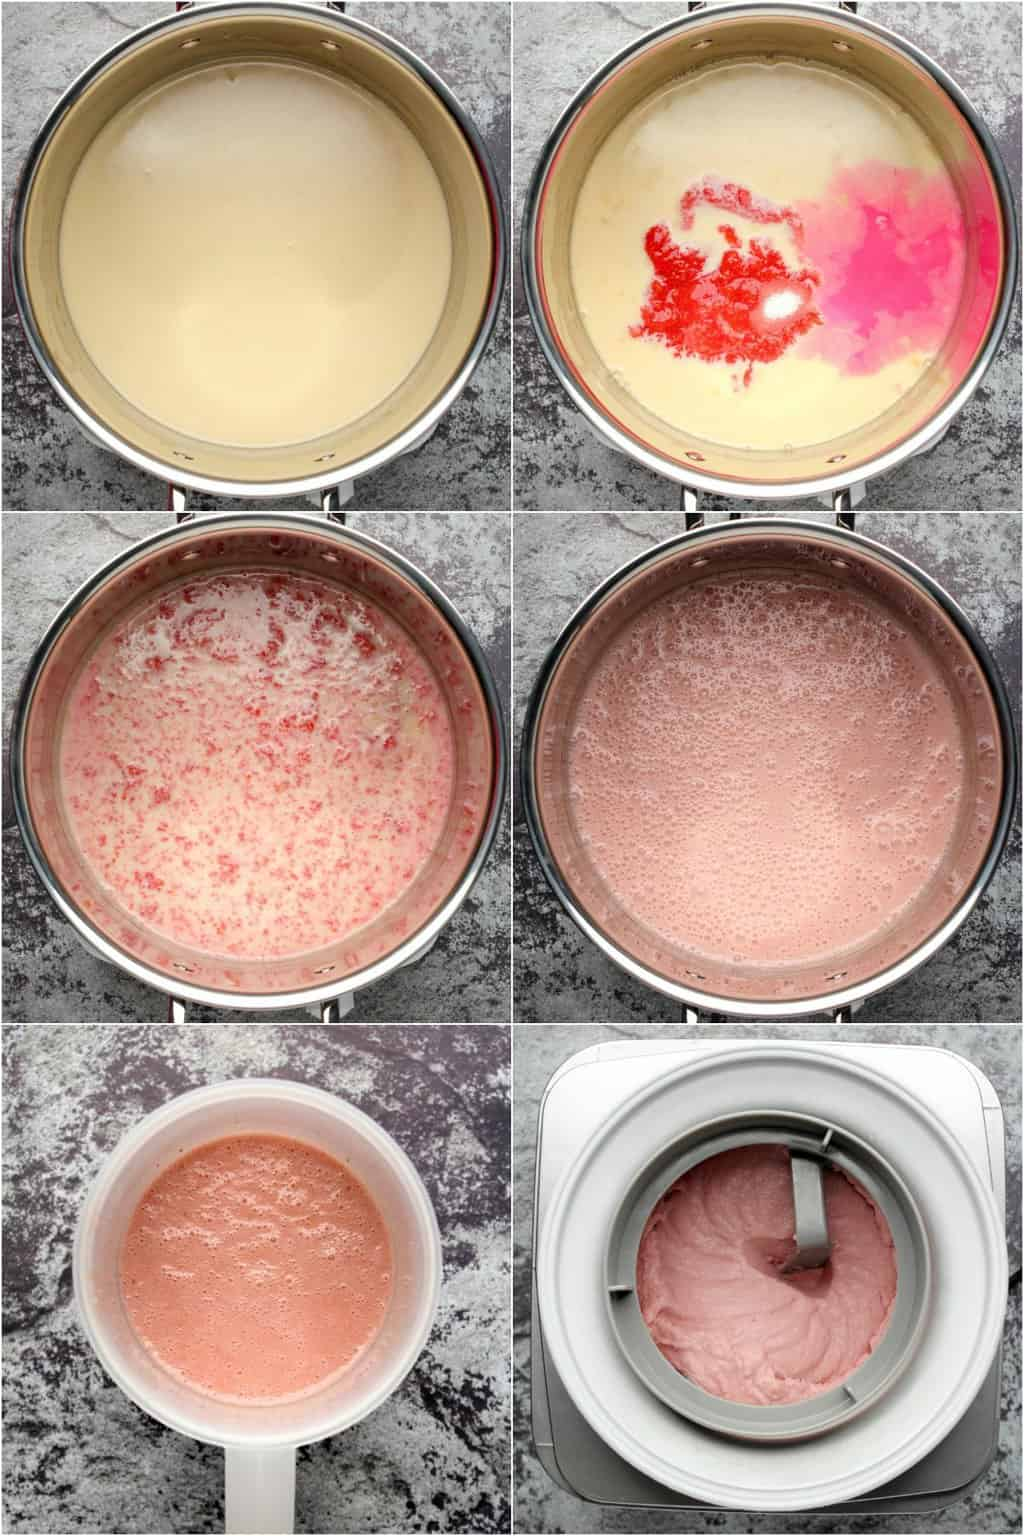 Step by step process photo collage of making vegan strawberry ice cream.